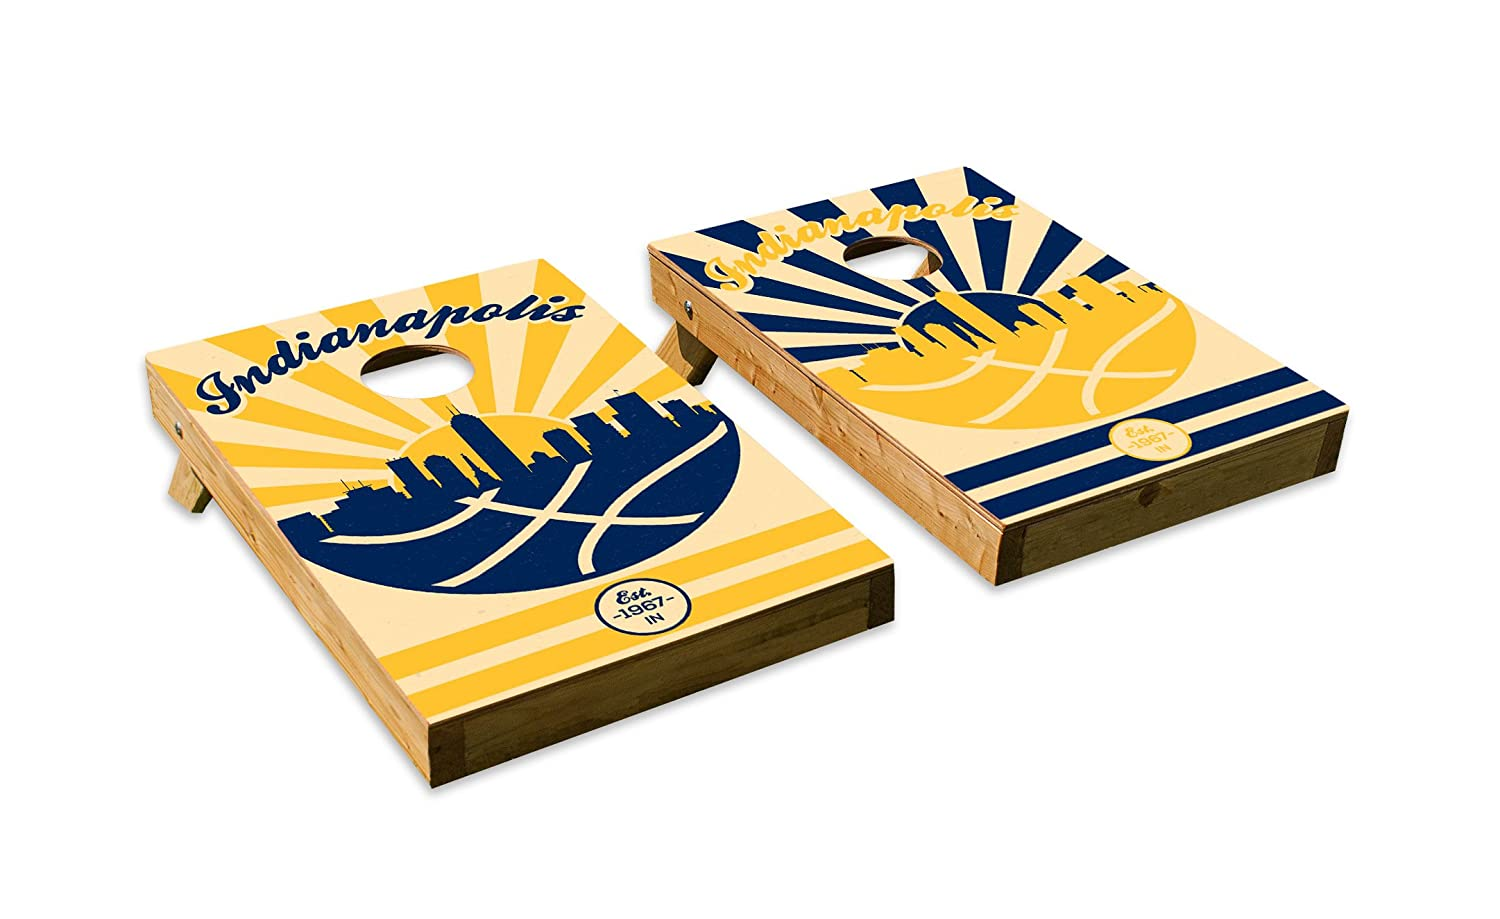 Indianapolis ColtsデザインCornhole/Bean Bag Tossボードセット – Made in USA木製 – 2 ' x3 'テールゲートサイズ – Includes 8 corn-filled Beanバッグ B07F16X6MZ Parent  Tailgate